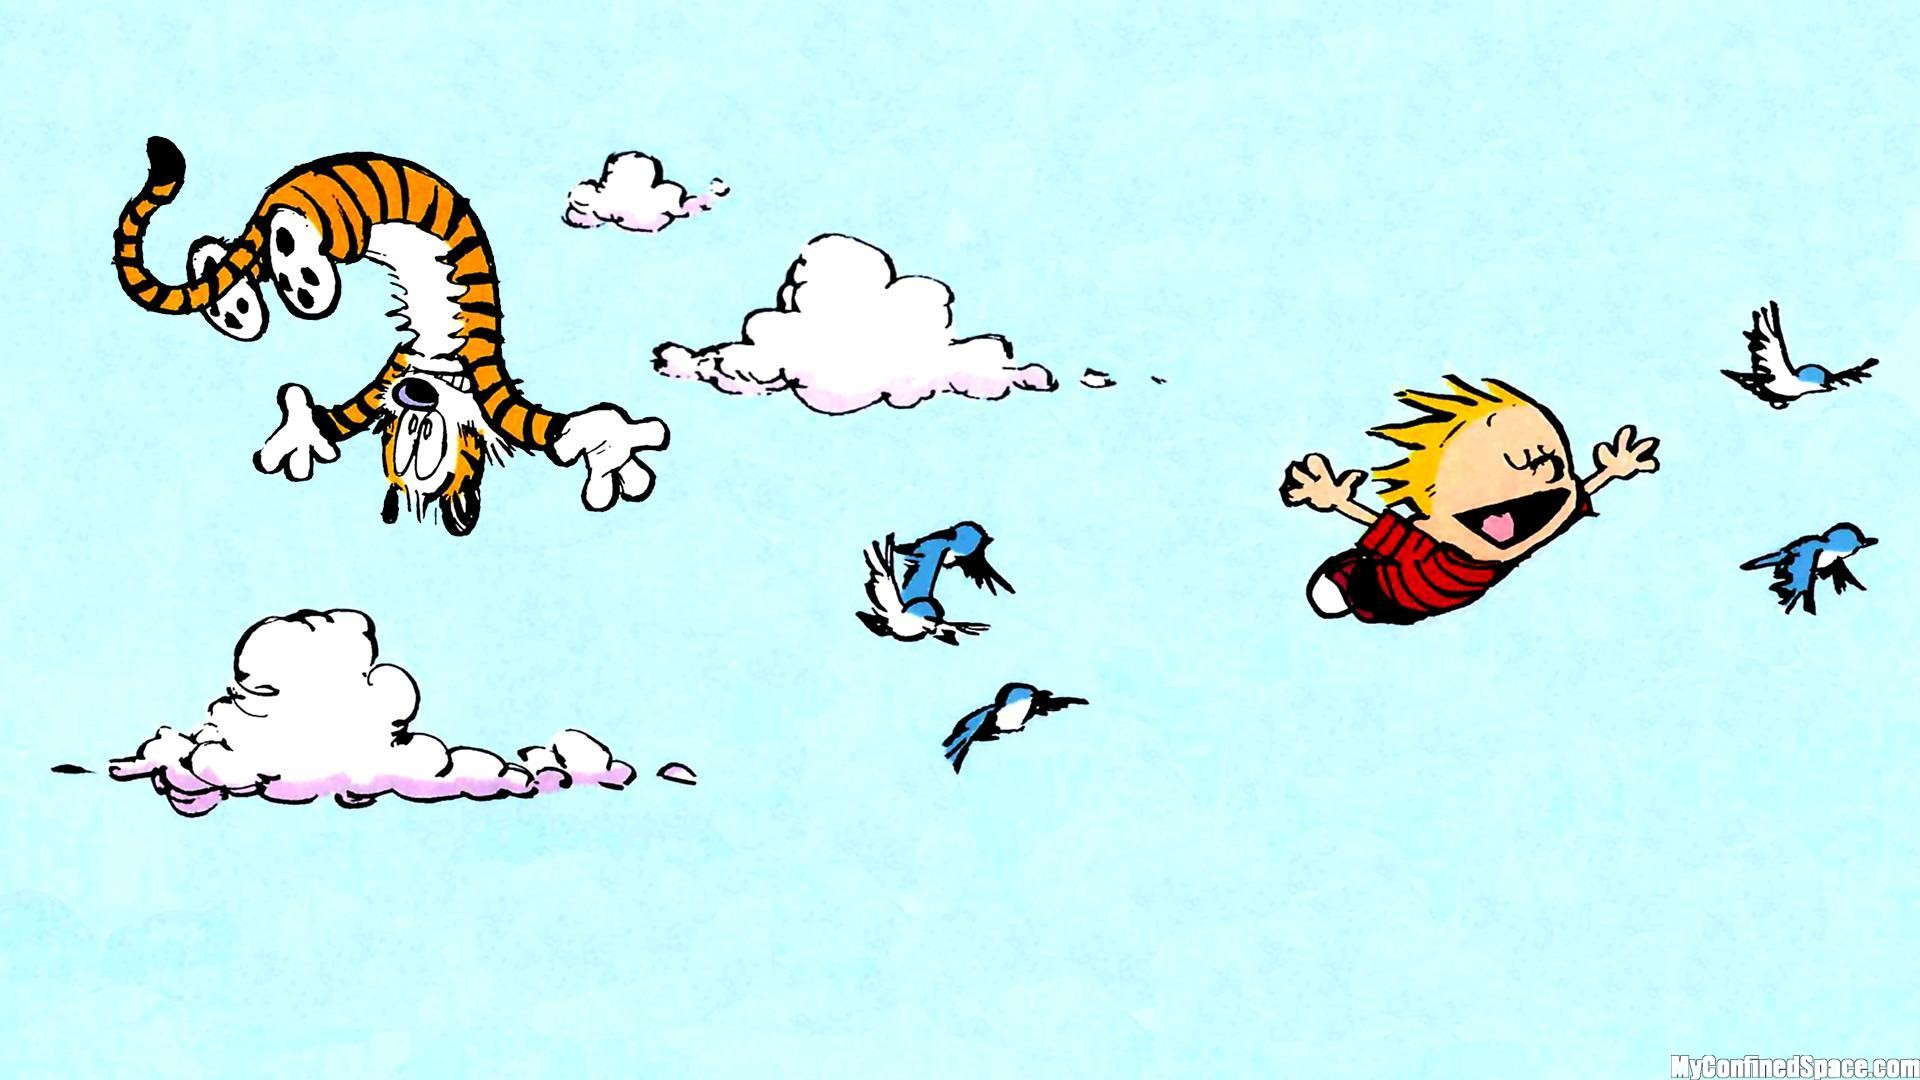 1920x1080 Quick edit on an old Calvin and Hobbes favorite 1920×1080 Calvin And Hobbes  Wallpapers